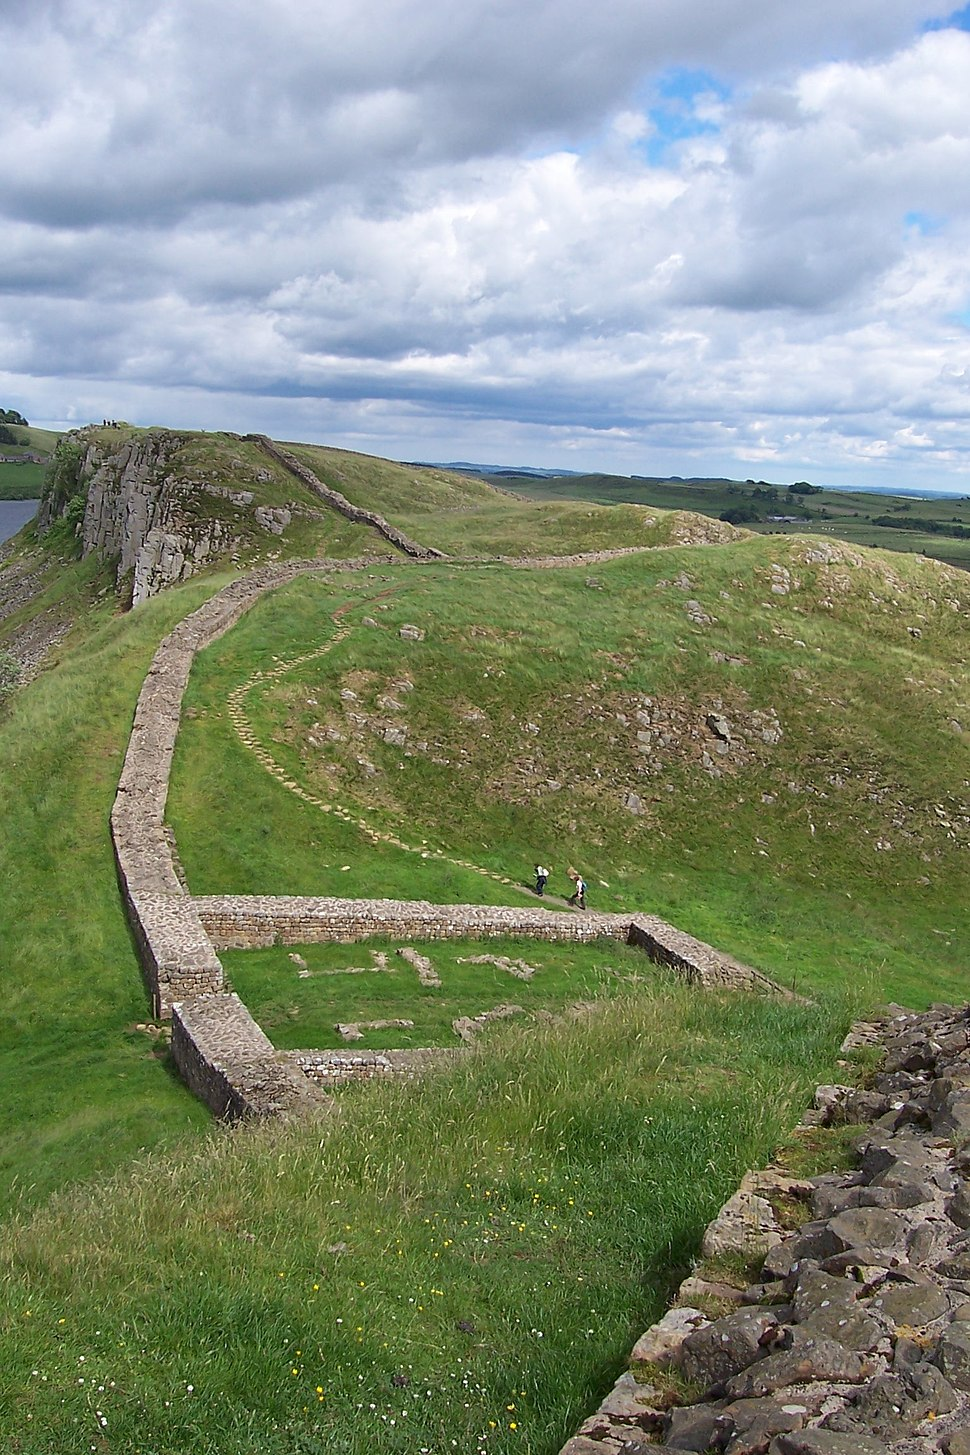 Milecastle 39 on Hadrian's Wall 2